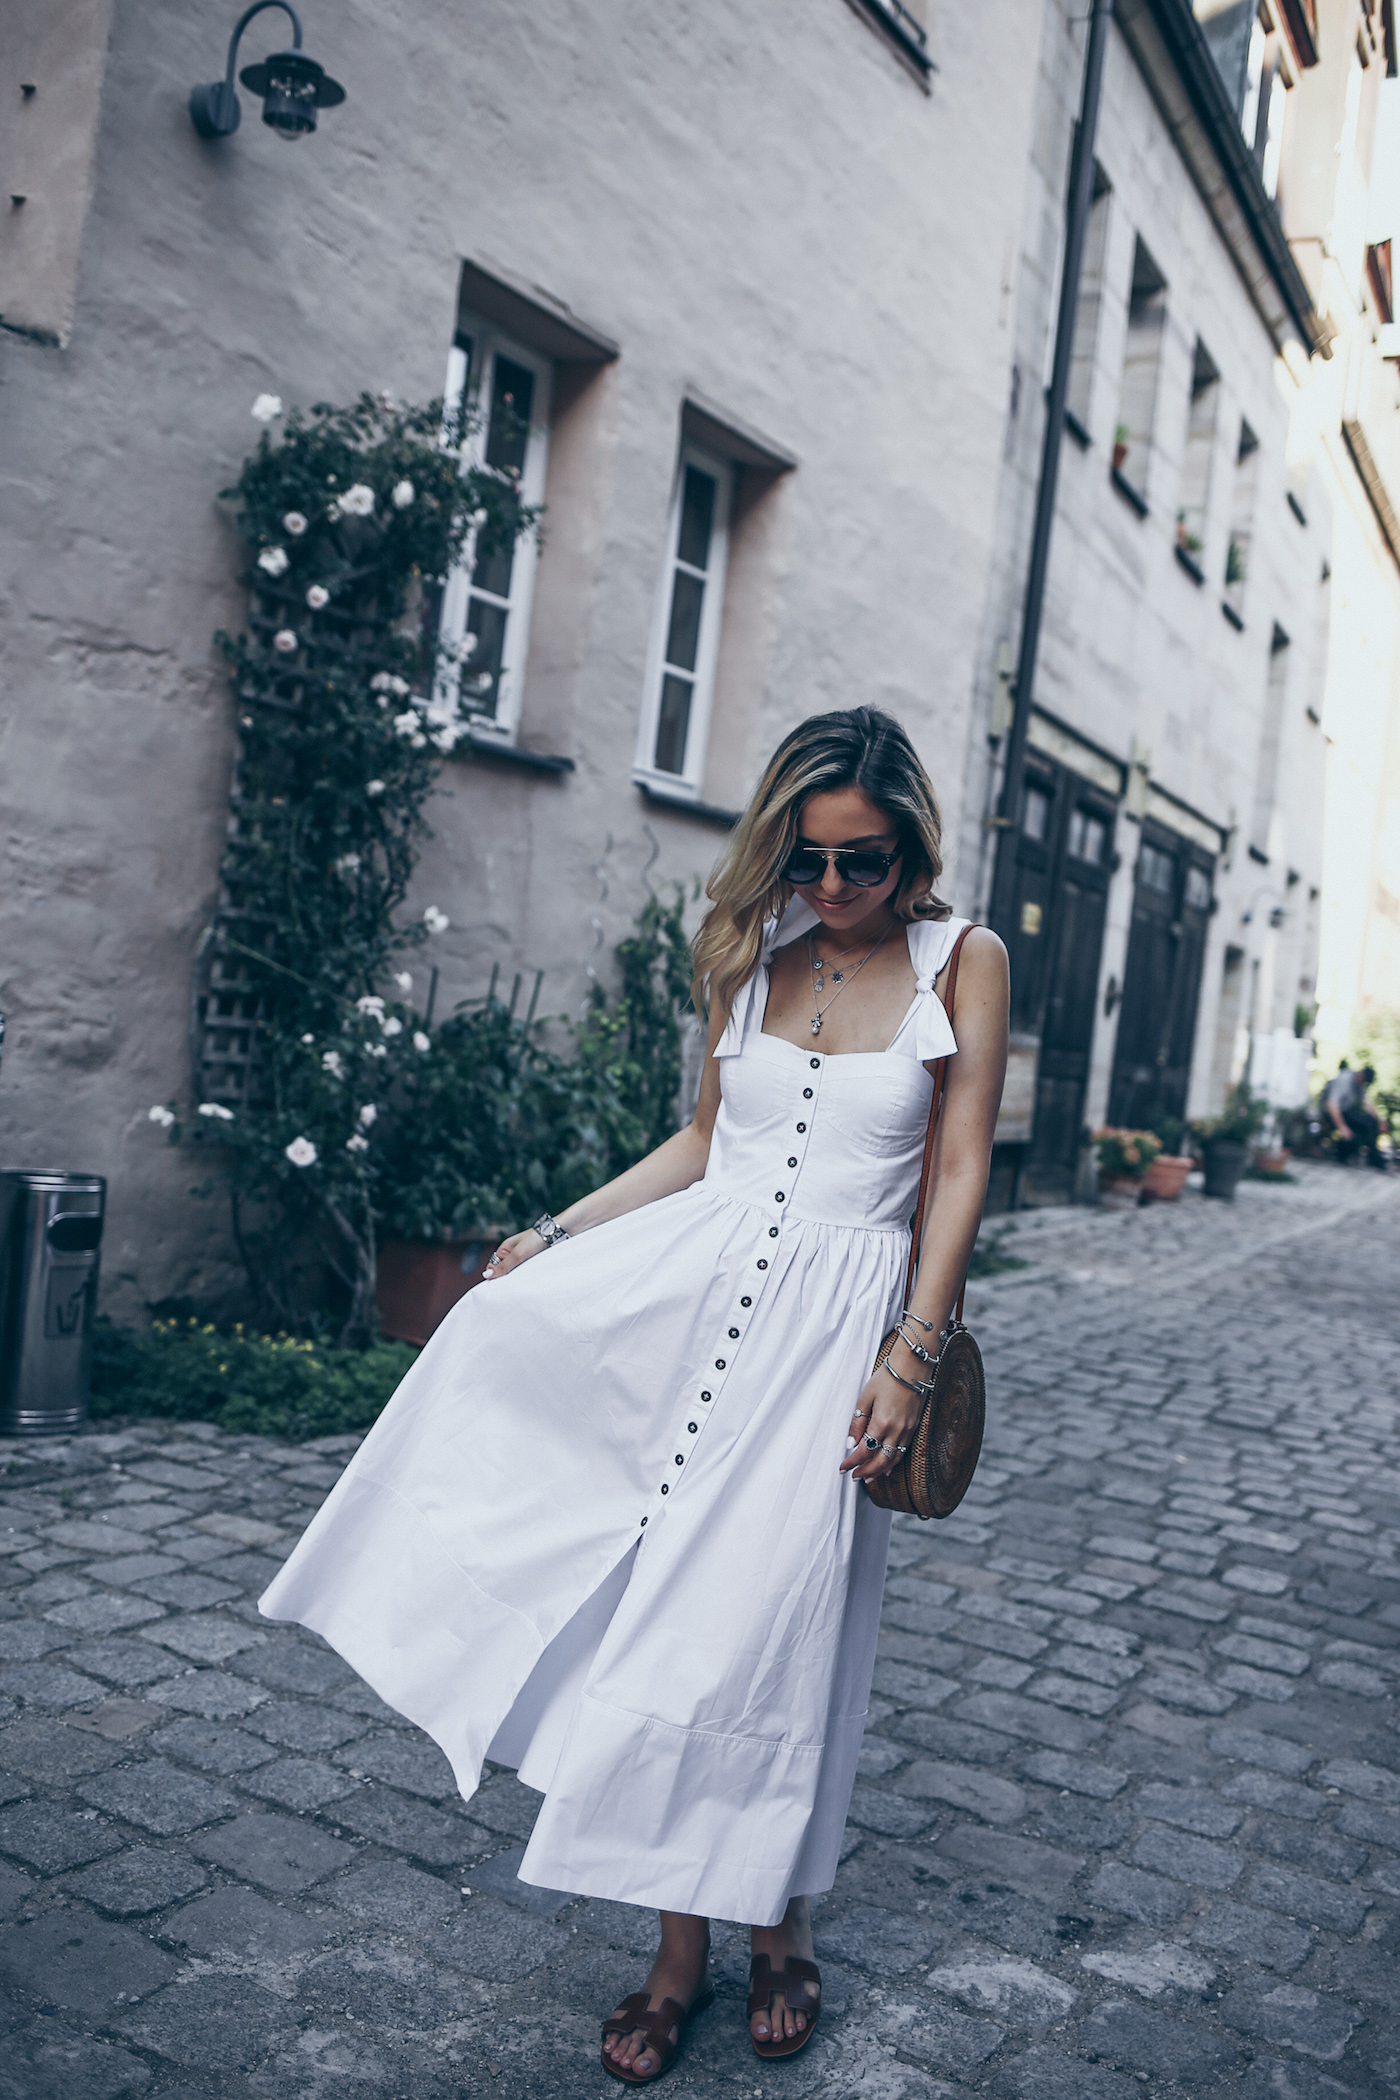 Hermes-Oran-Sandals-Outfit-Blog-Street-Style-Summer-WantGetRepeat-01 ... 047fa9c0d